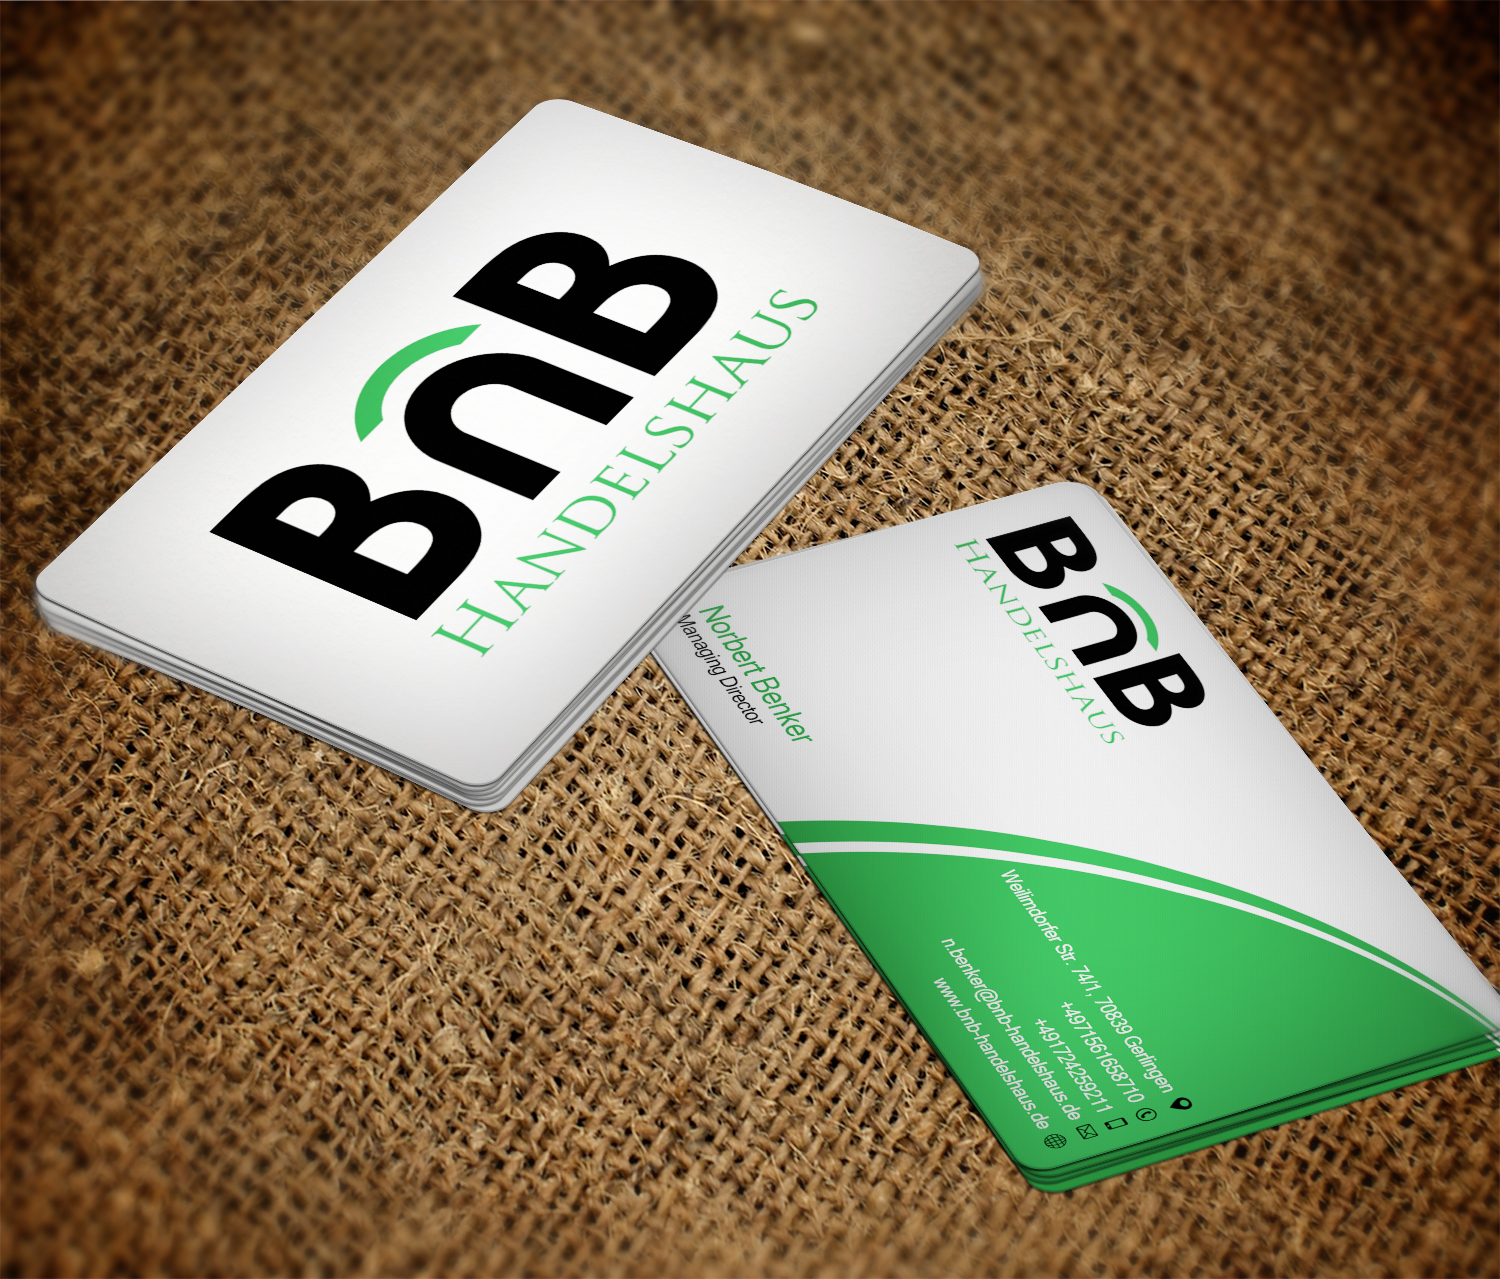 Elegant, Serious, Trade Business Card Design for BnB Handelshaus by ...